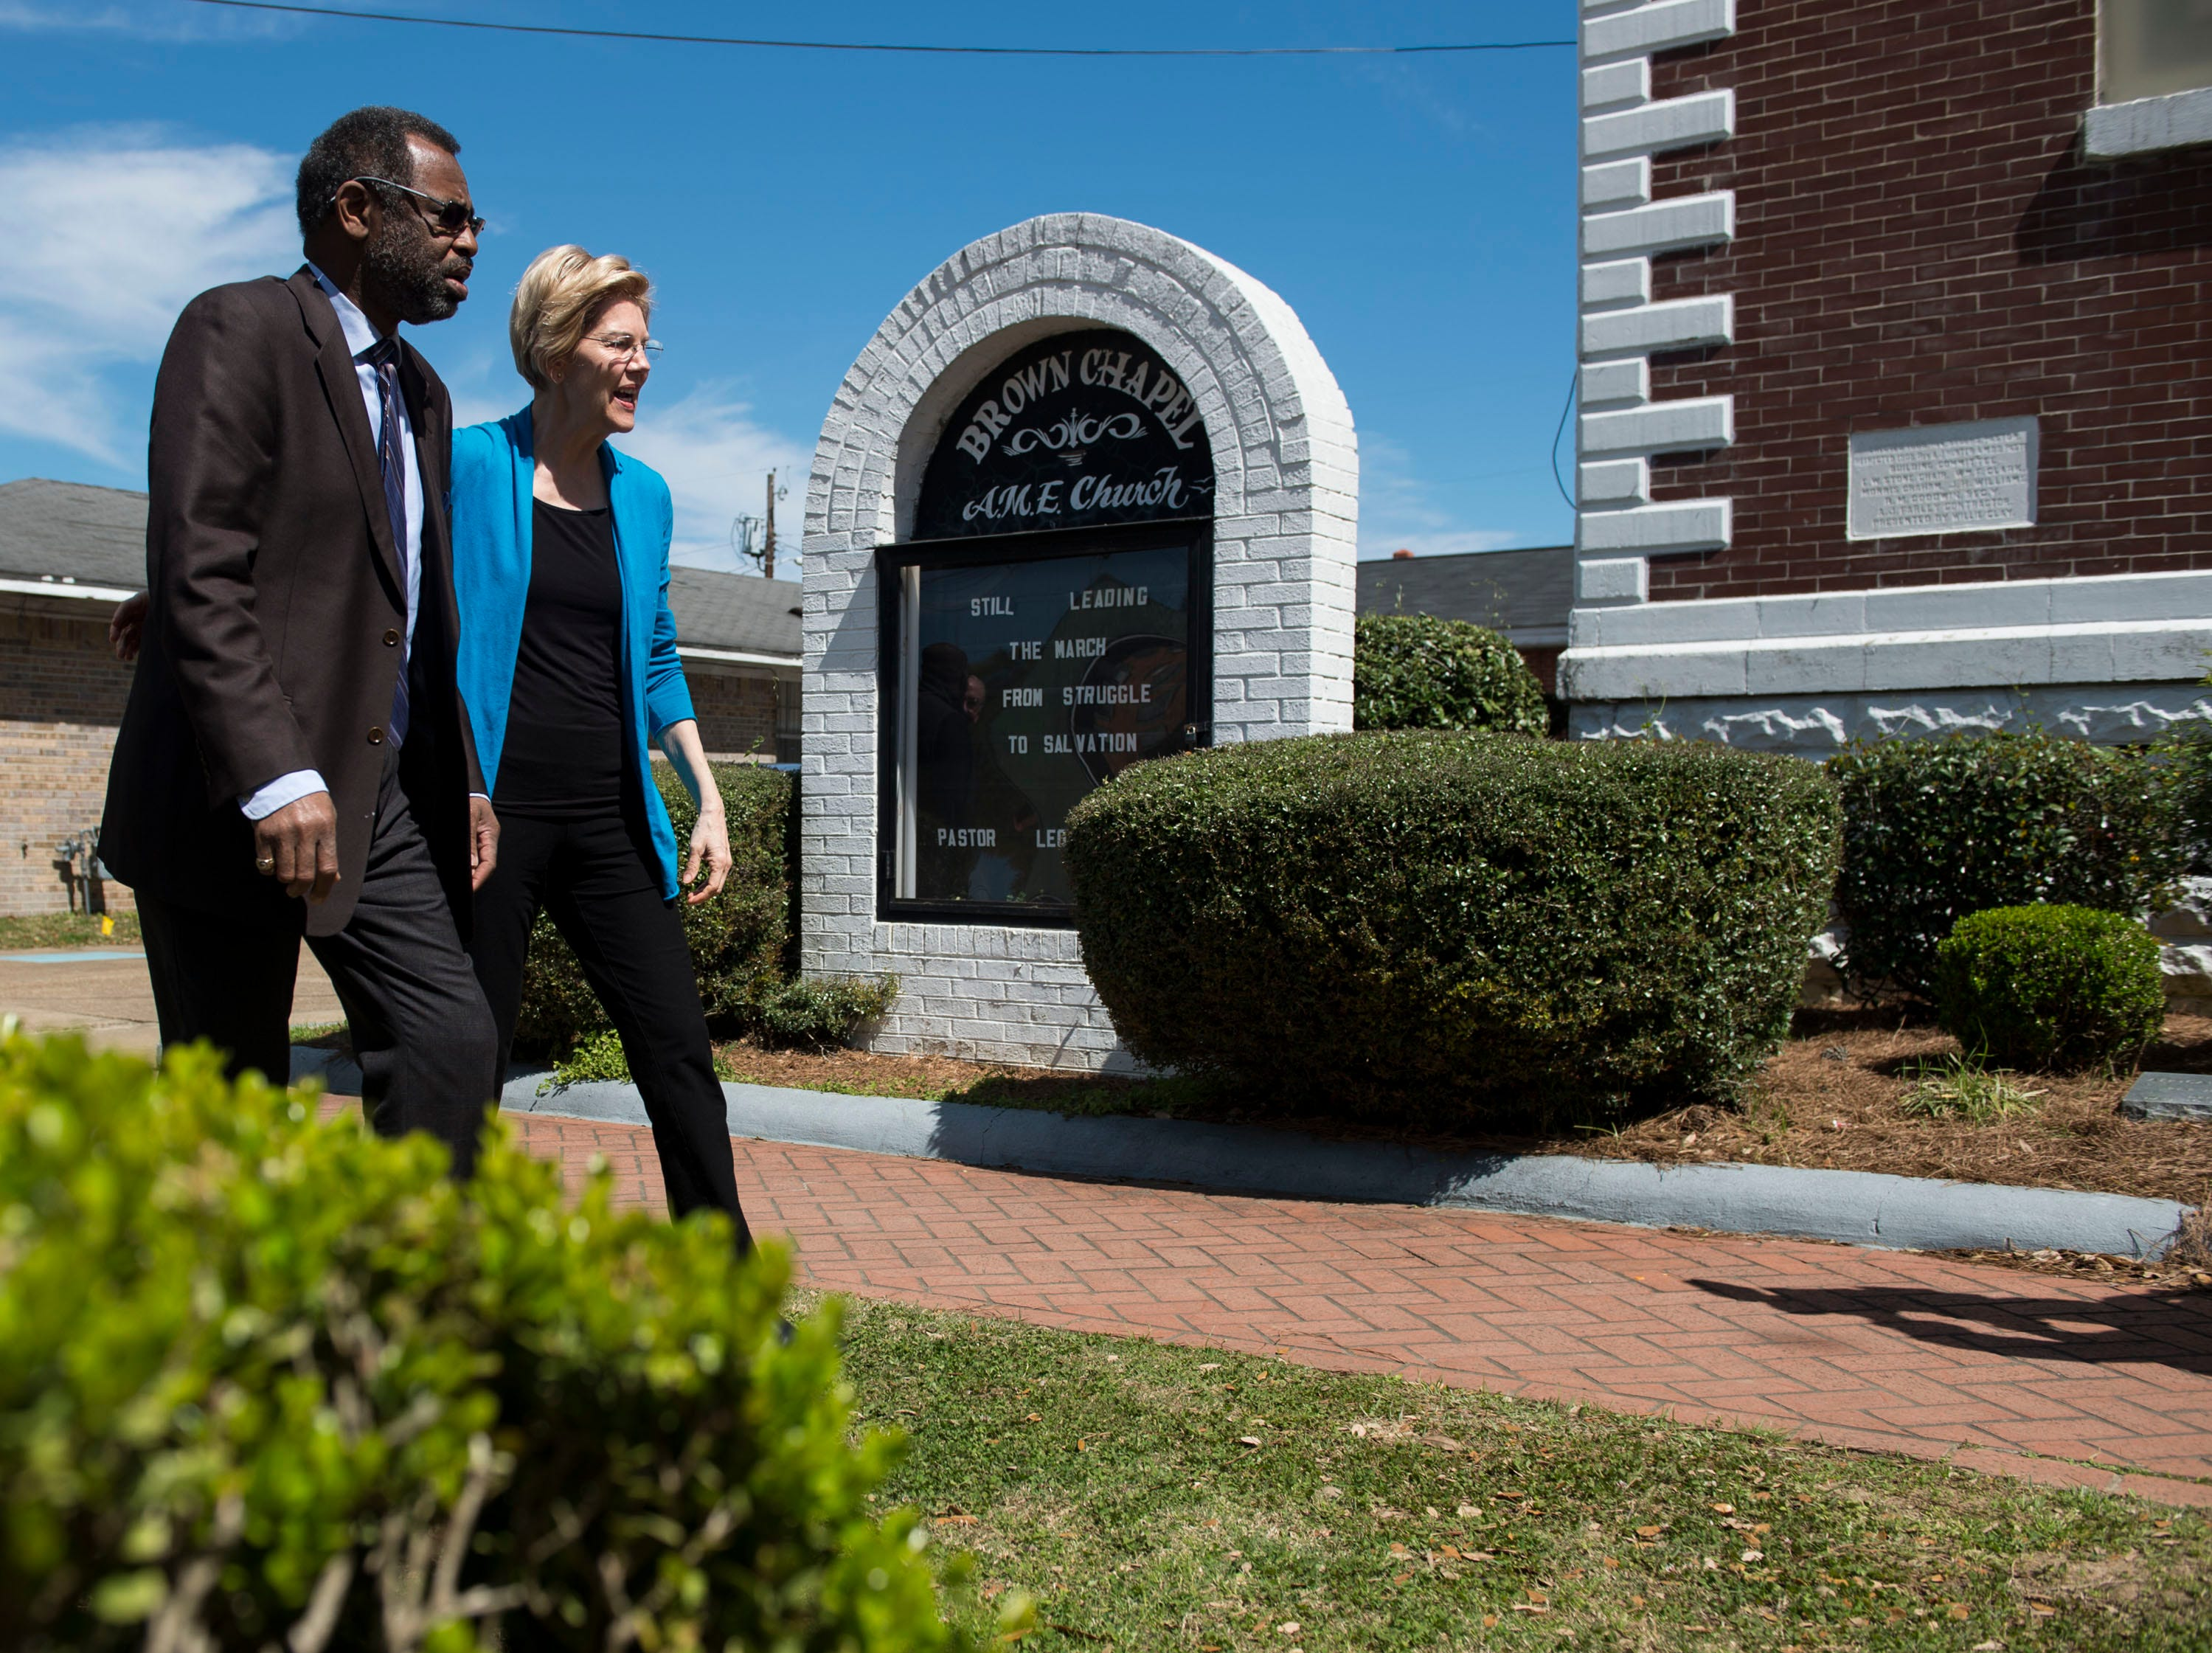 Pastor Leodis Strong walks with Sen. Elizabeth Warren into Brown Chapel AME Church in Selma, Ala., on Tuesday, March 19, 2019.